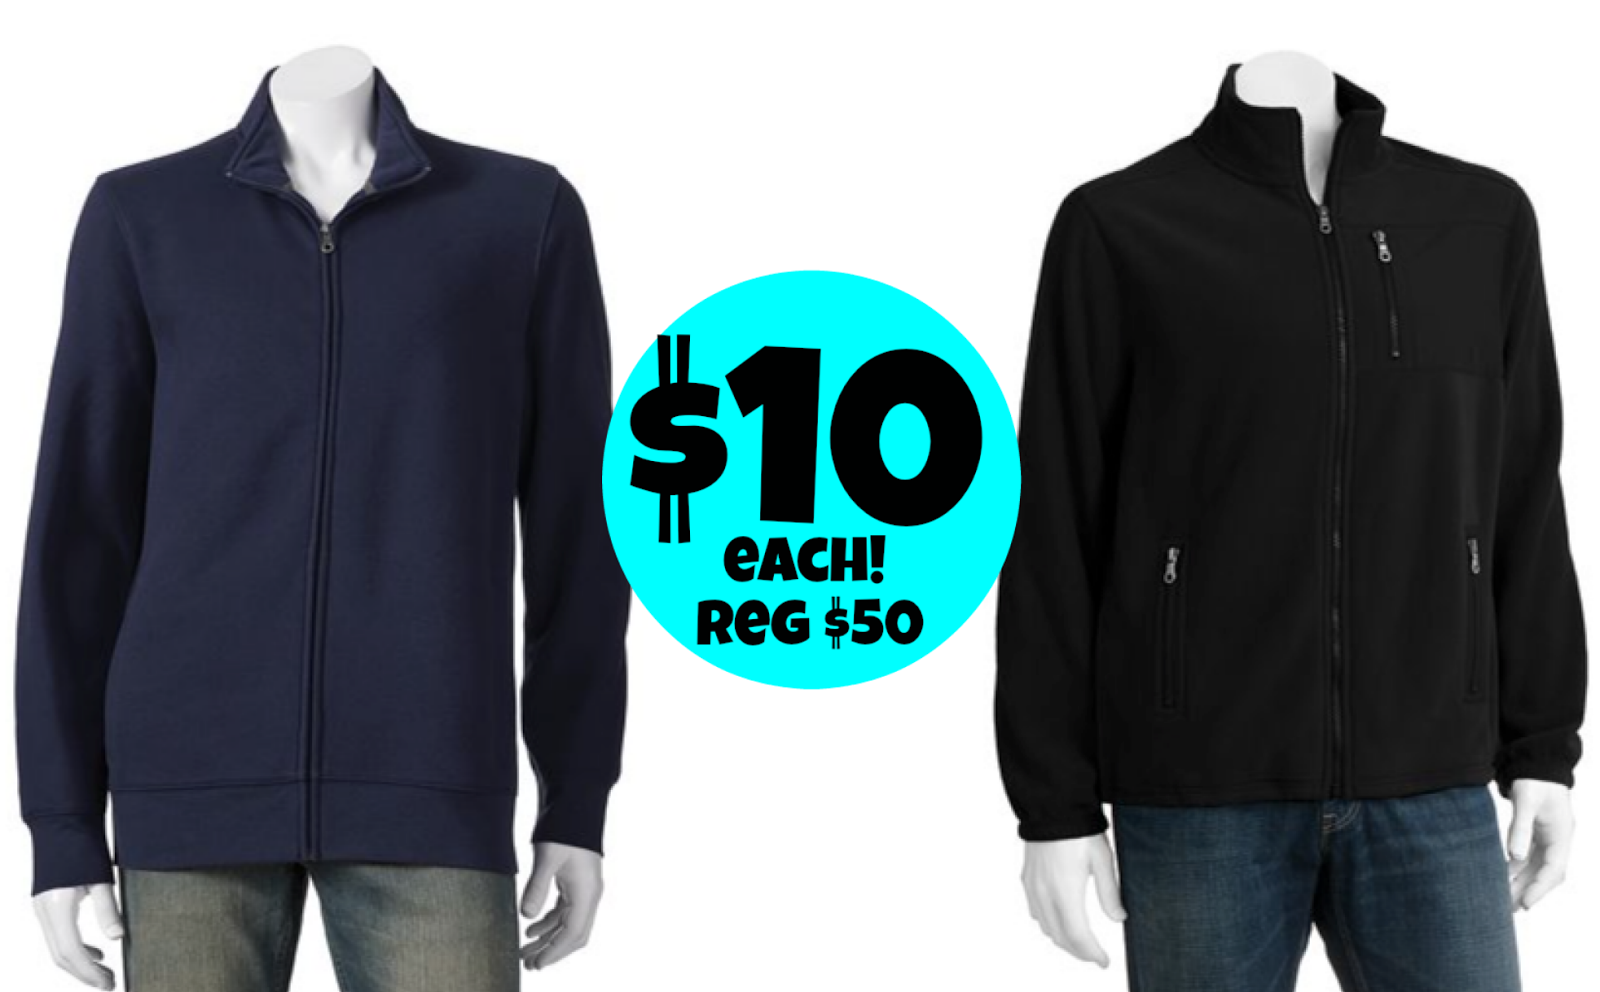 http://www.thebinderladies.com/2015/03/kohls-com-mens-croft-barrow-fleece.html#.VPZ4vELduyM